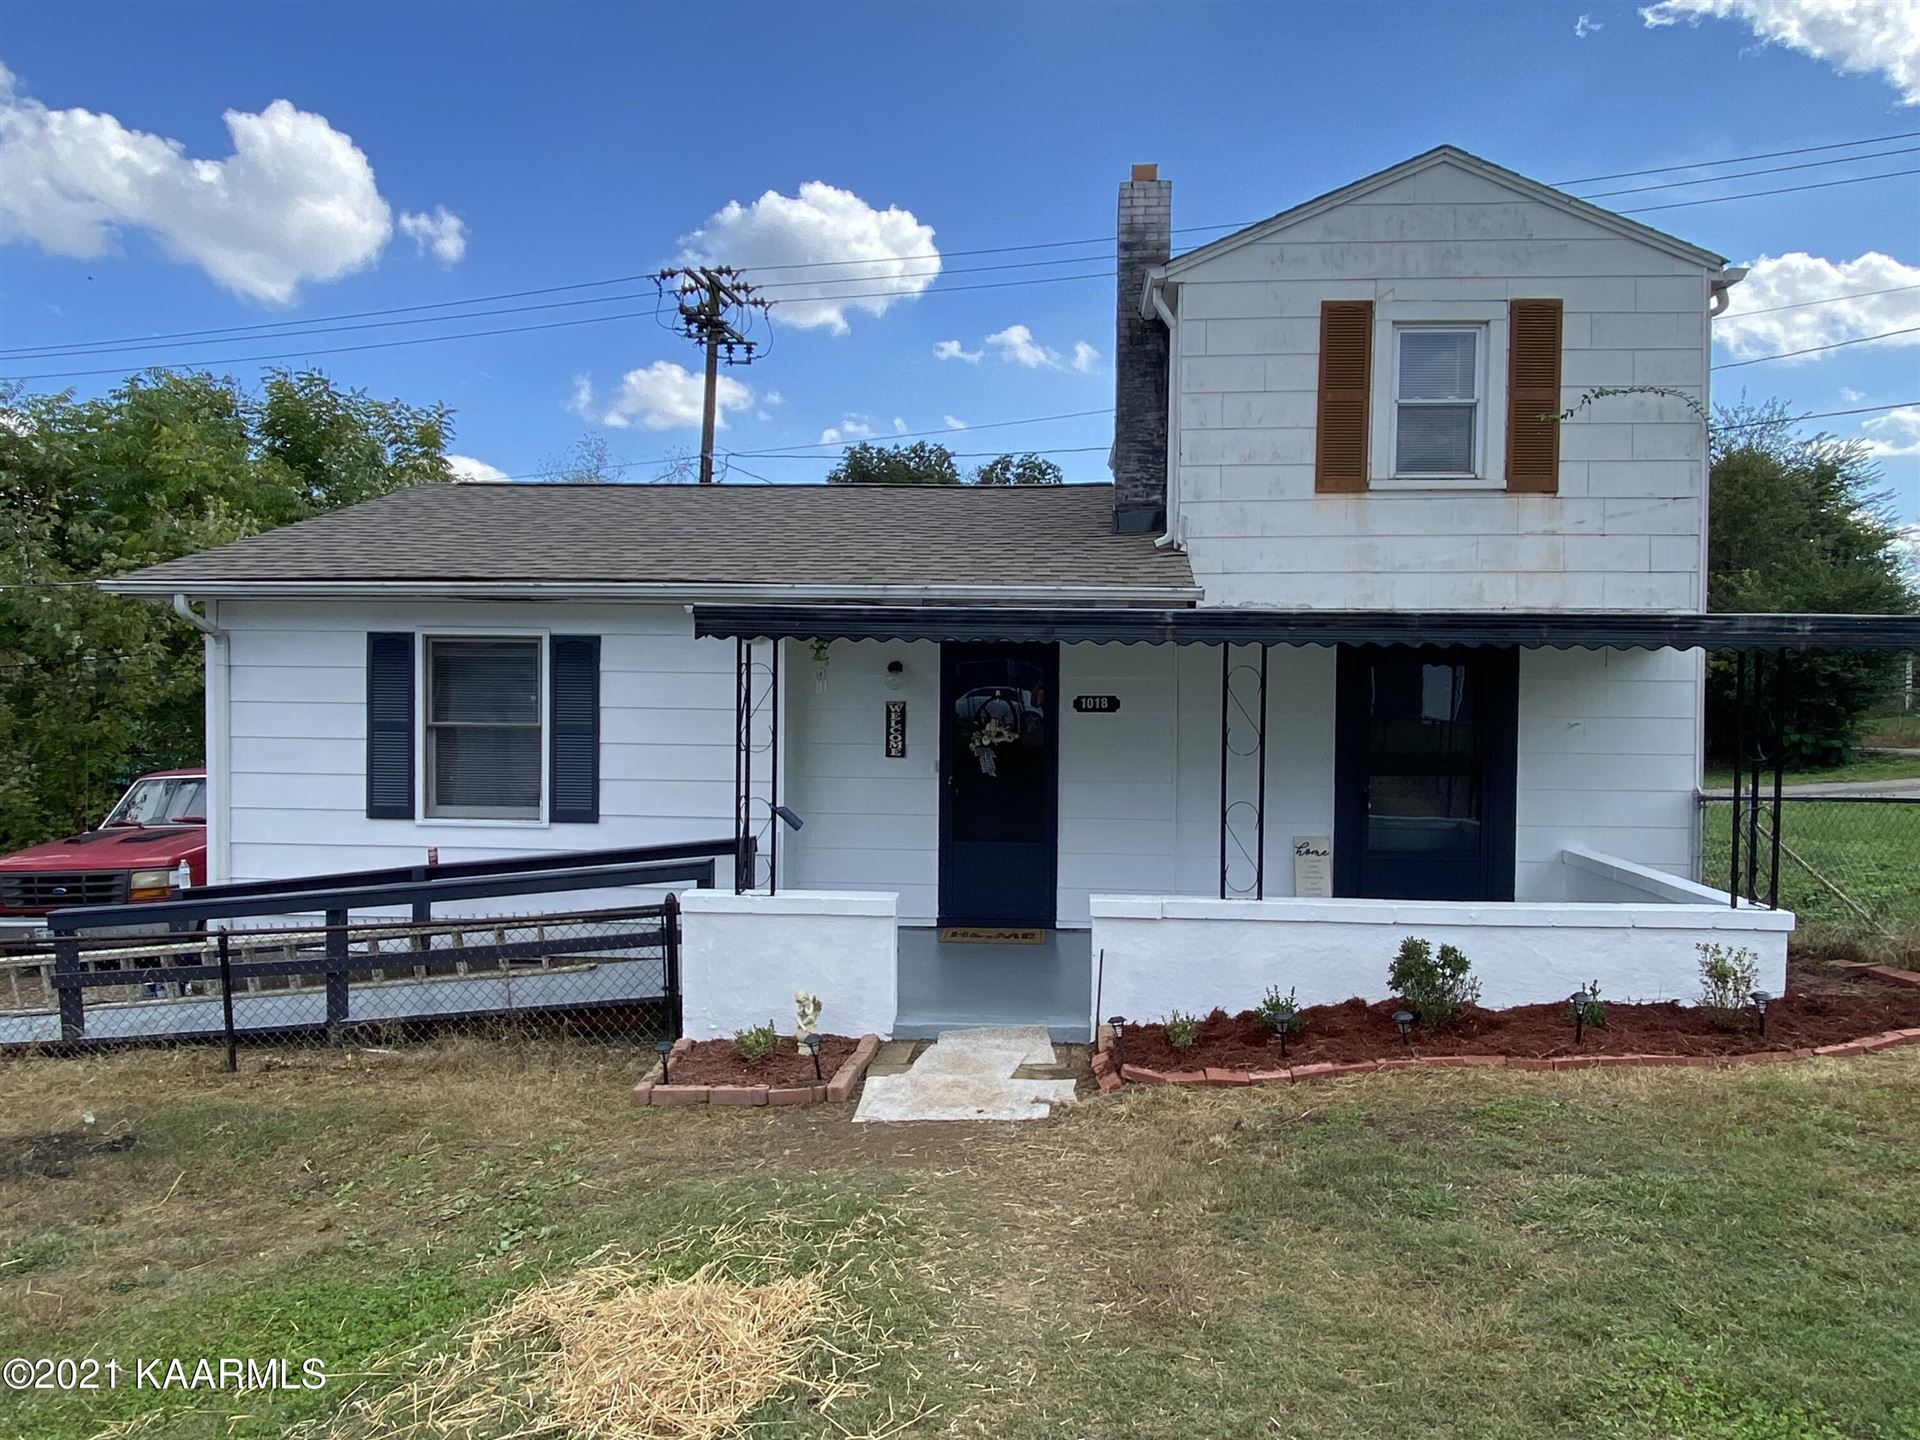 1018 Atlantic Ave, Knoxville, TN 37917 - MLS#: 1170745